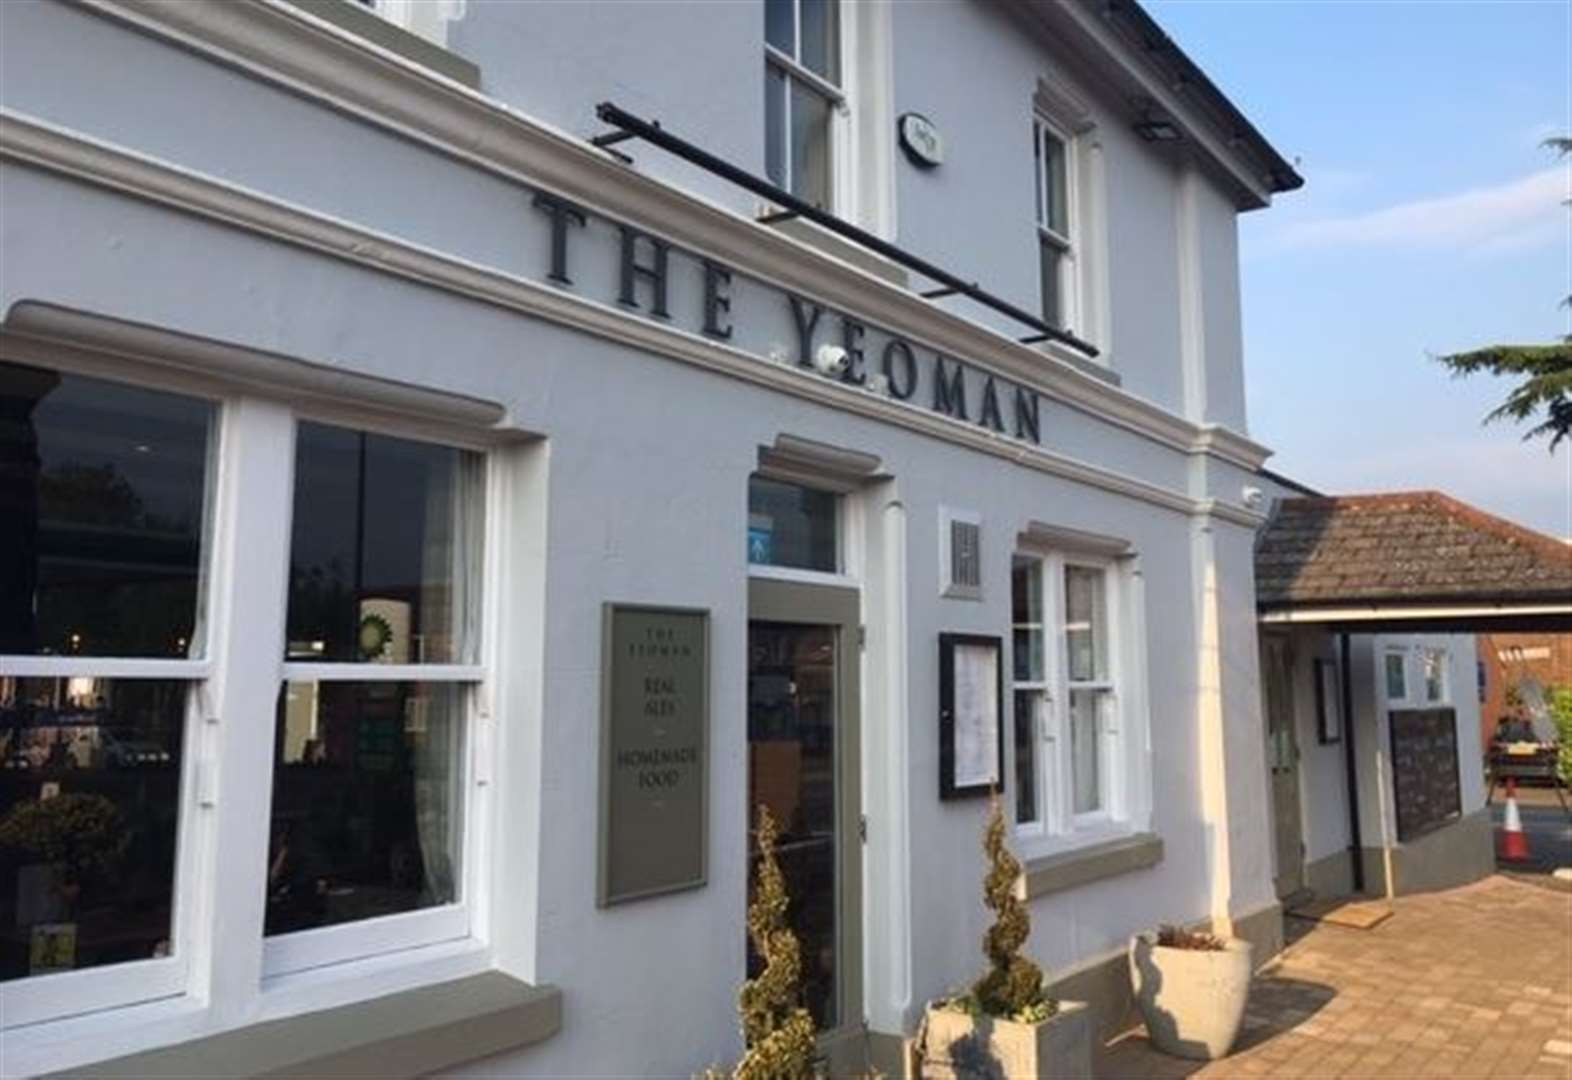 Secret Drinker calls in at The Yeoman in Bearsted